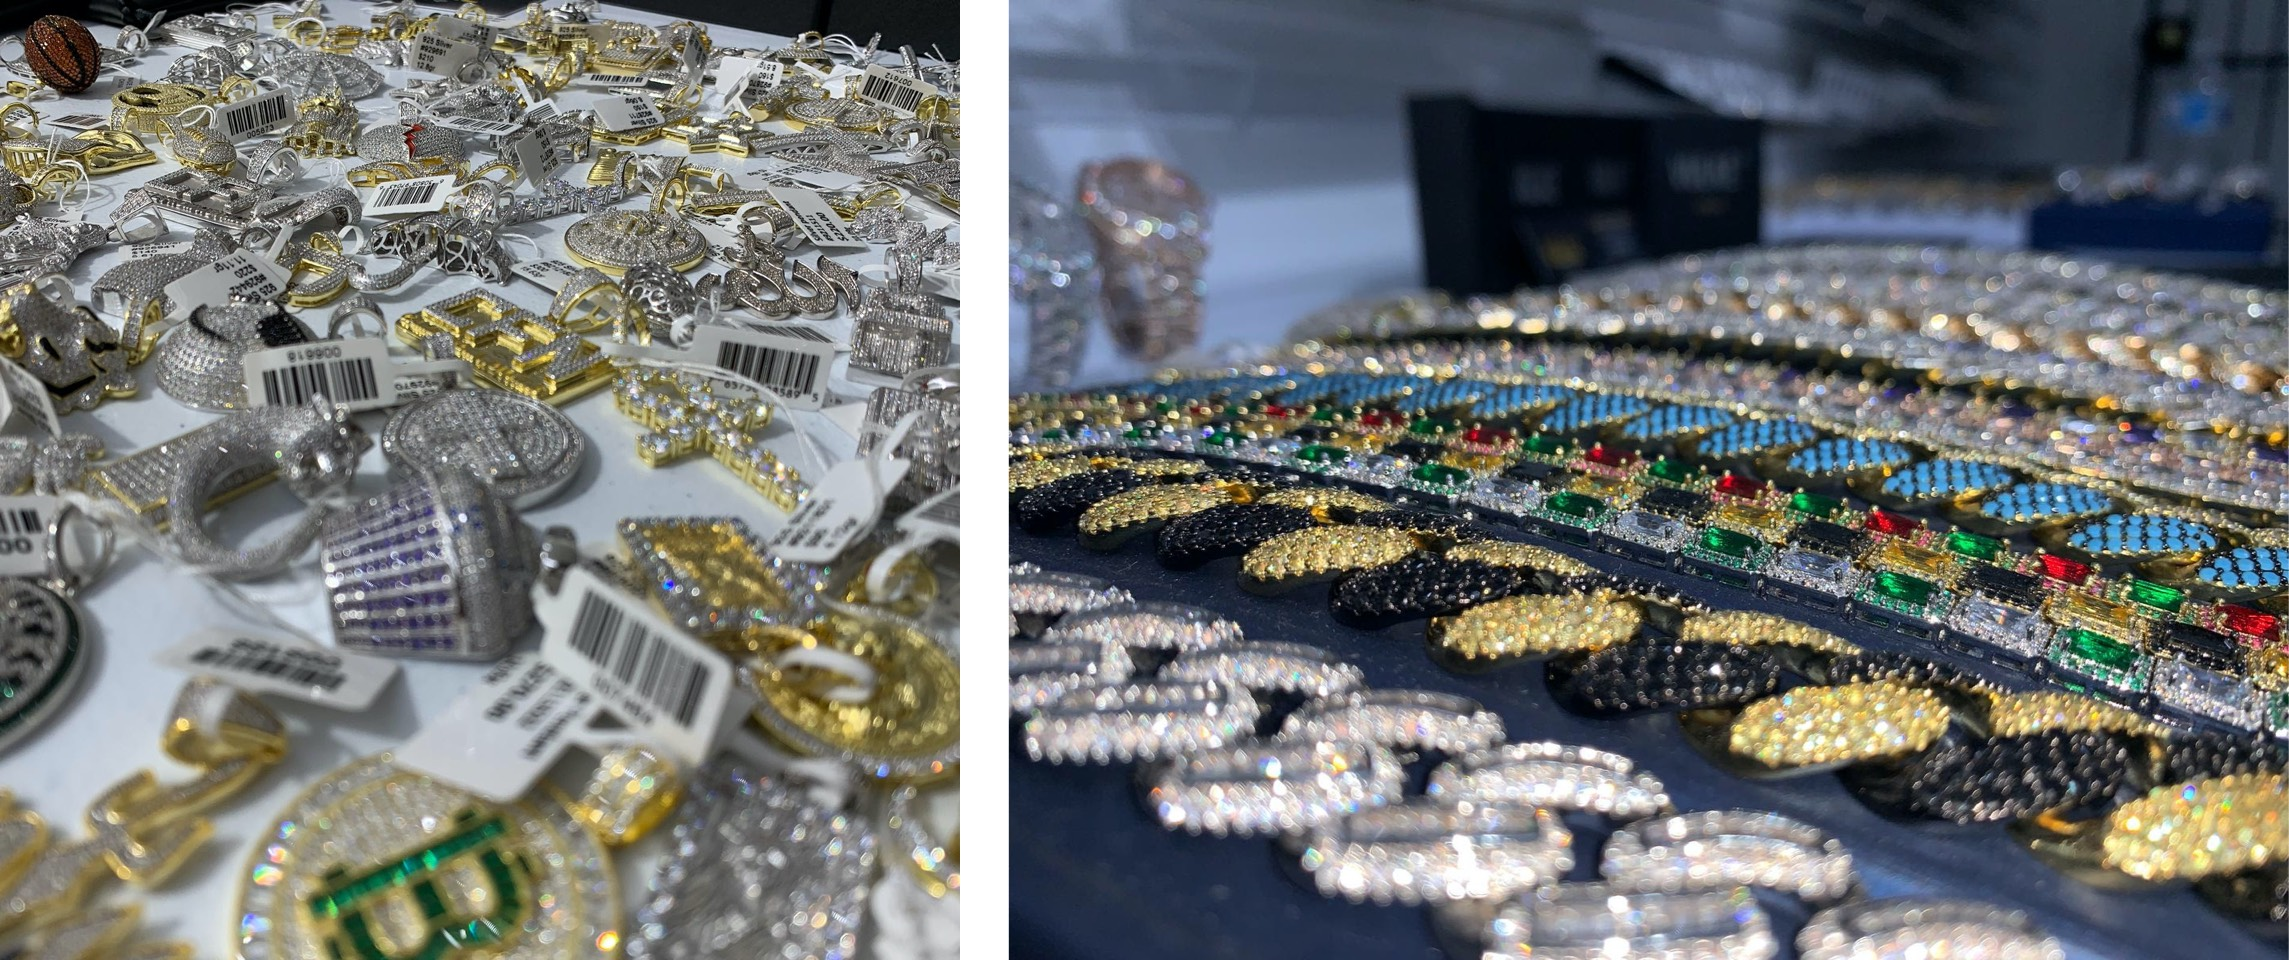 Buy Wholesale jewelry to sell